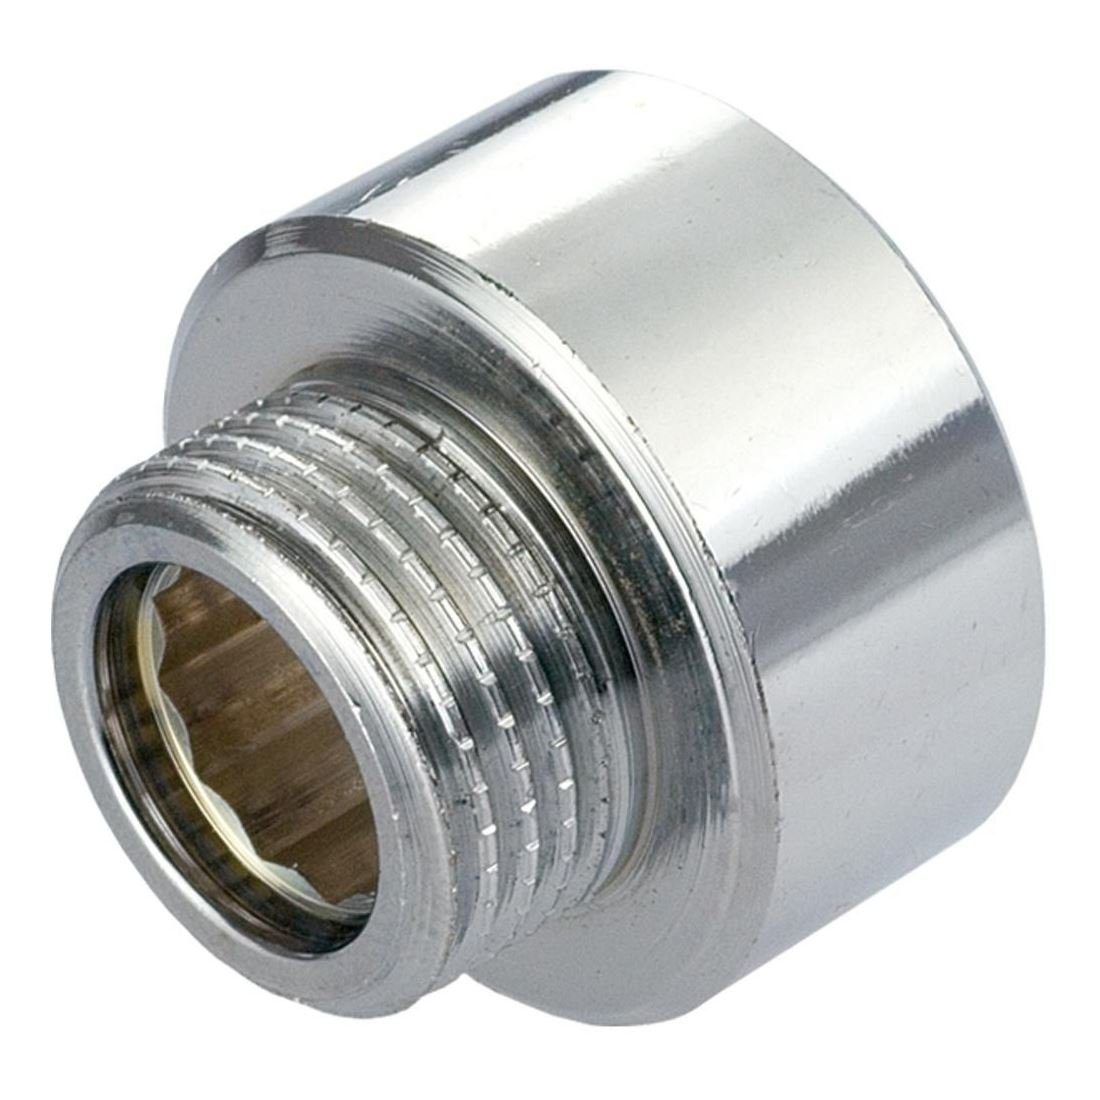 Round Female x Male Pipe Connection Reduction Fittings Chrome 3/4' x 1/2' BSP Invena